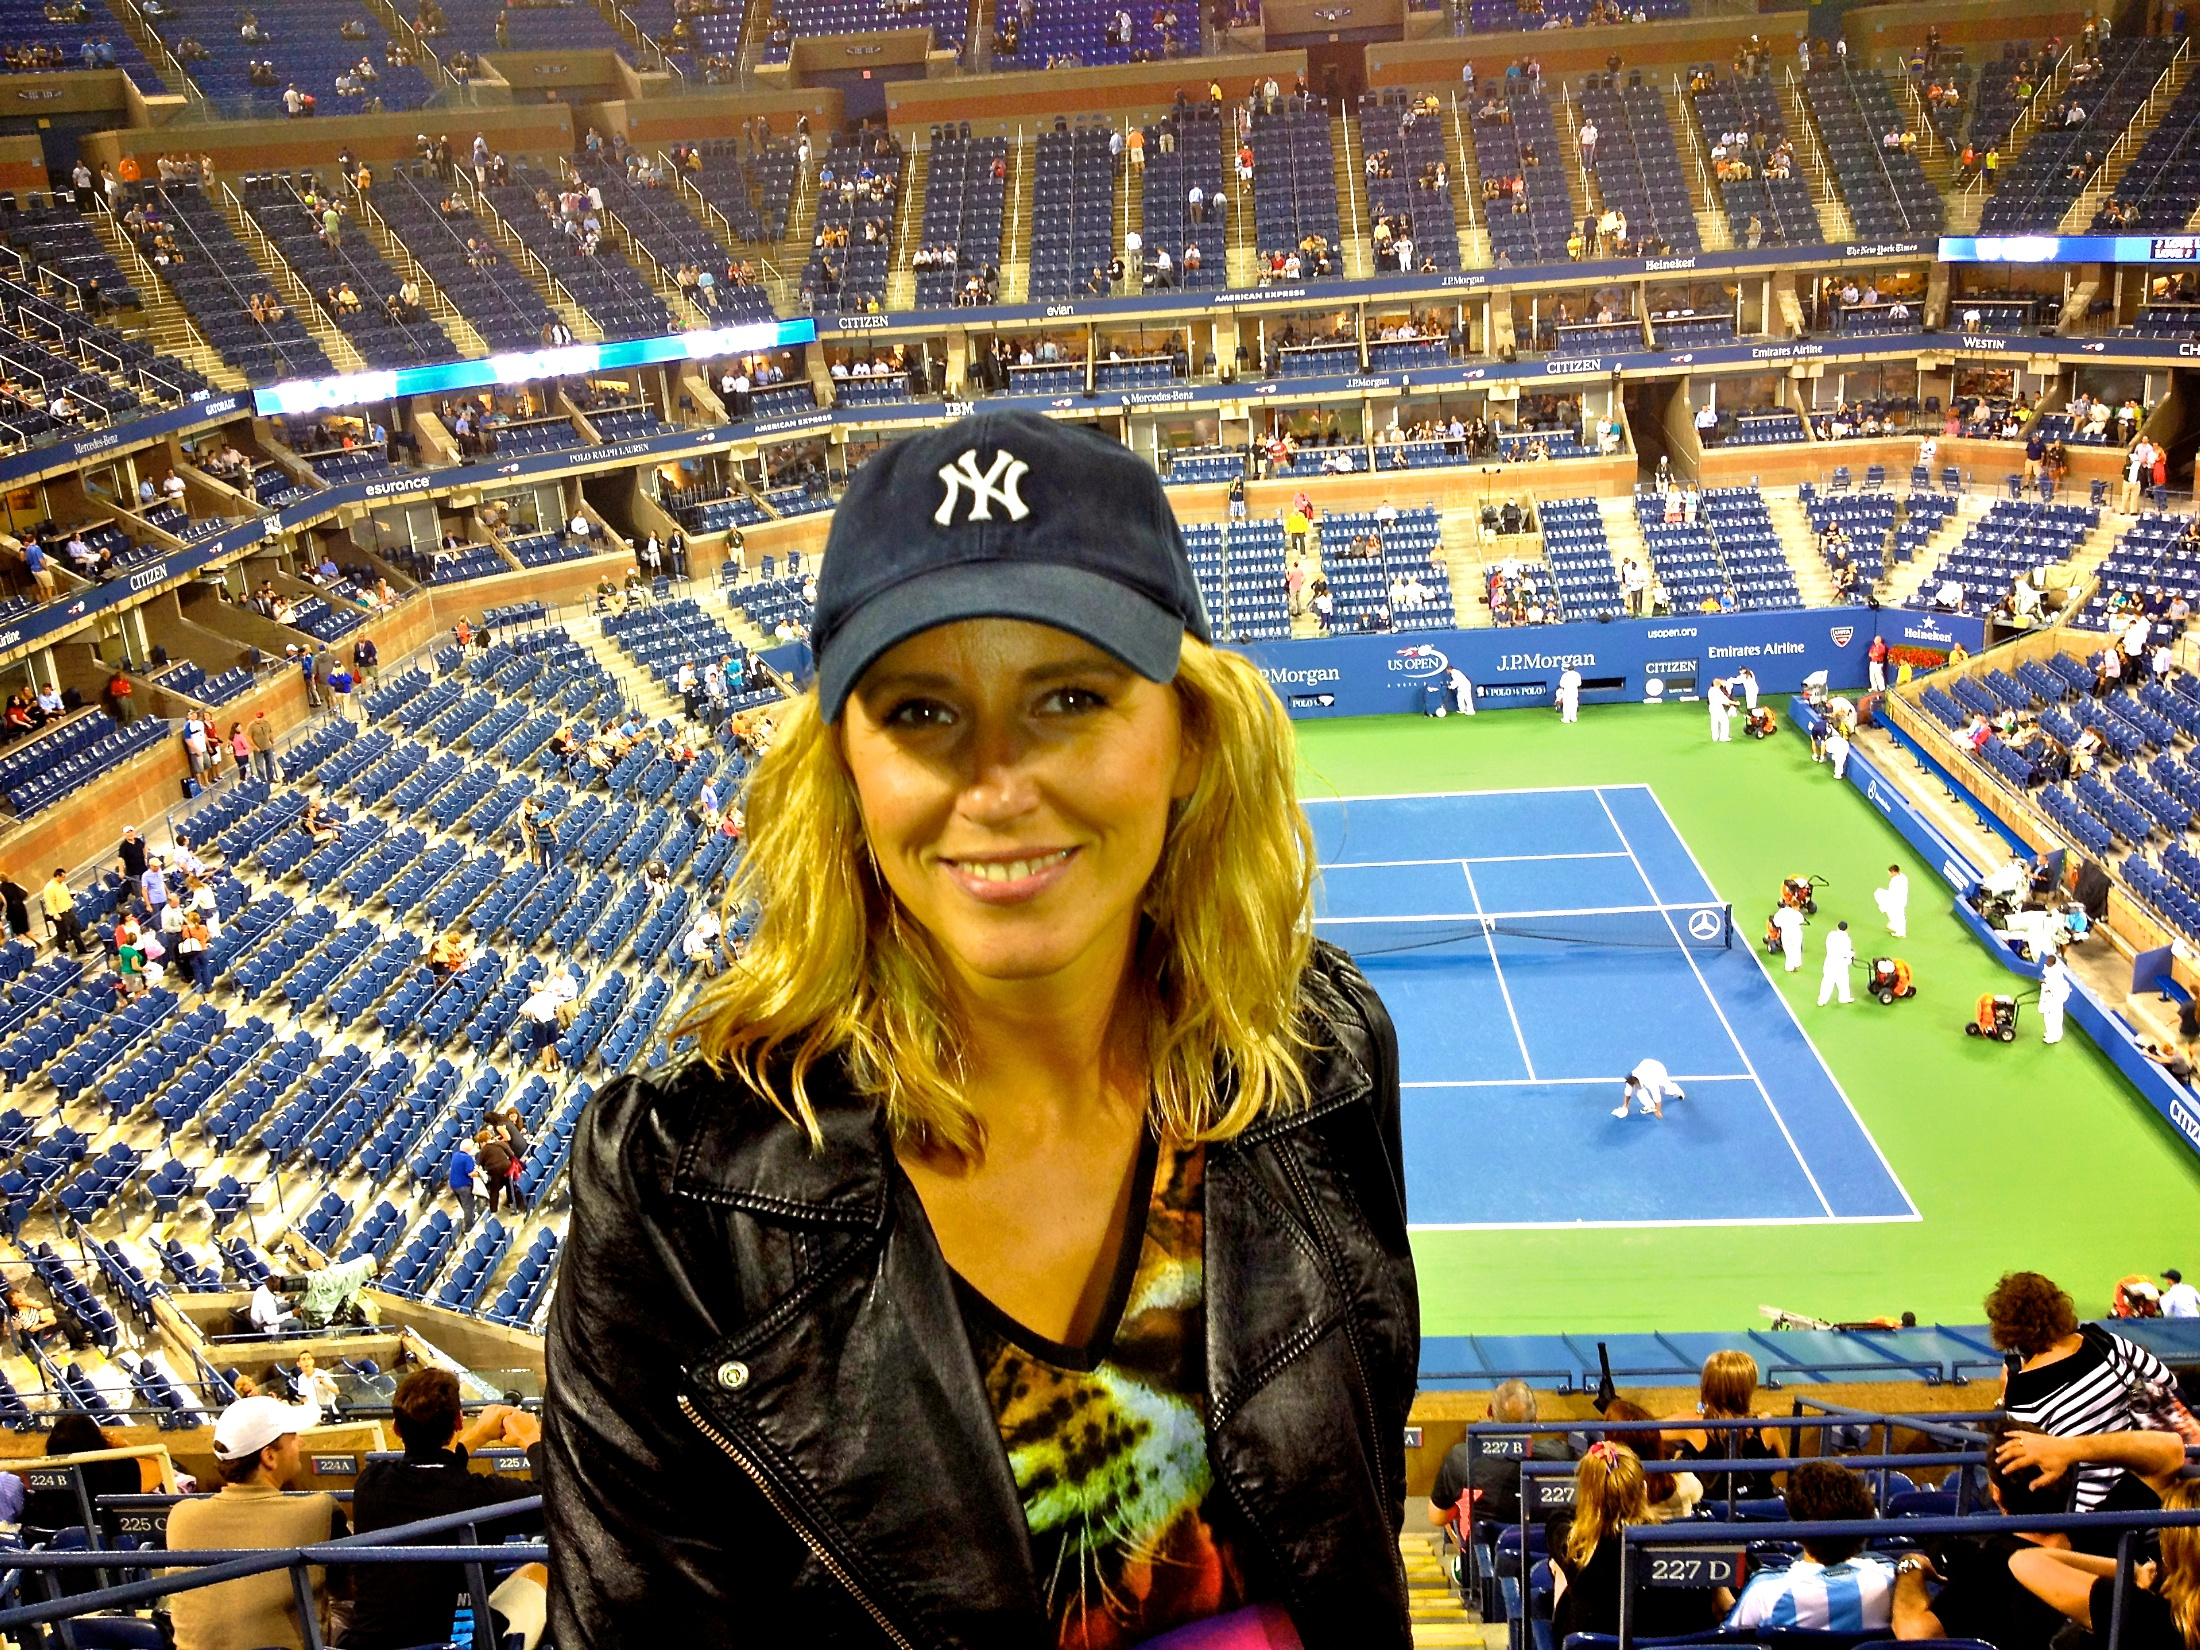 We love tennis groupies at the US open… and we love tennis of course! Here are 10 really great tips for your day at the US Open in Flushing Meadows: http://queens.about.com/od/usopen/tp/usopen_tips.htm